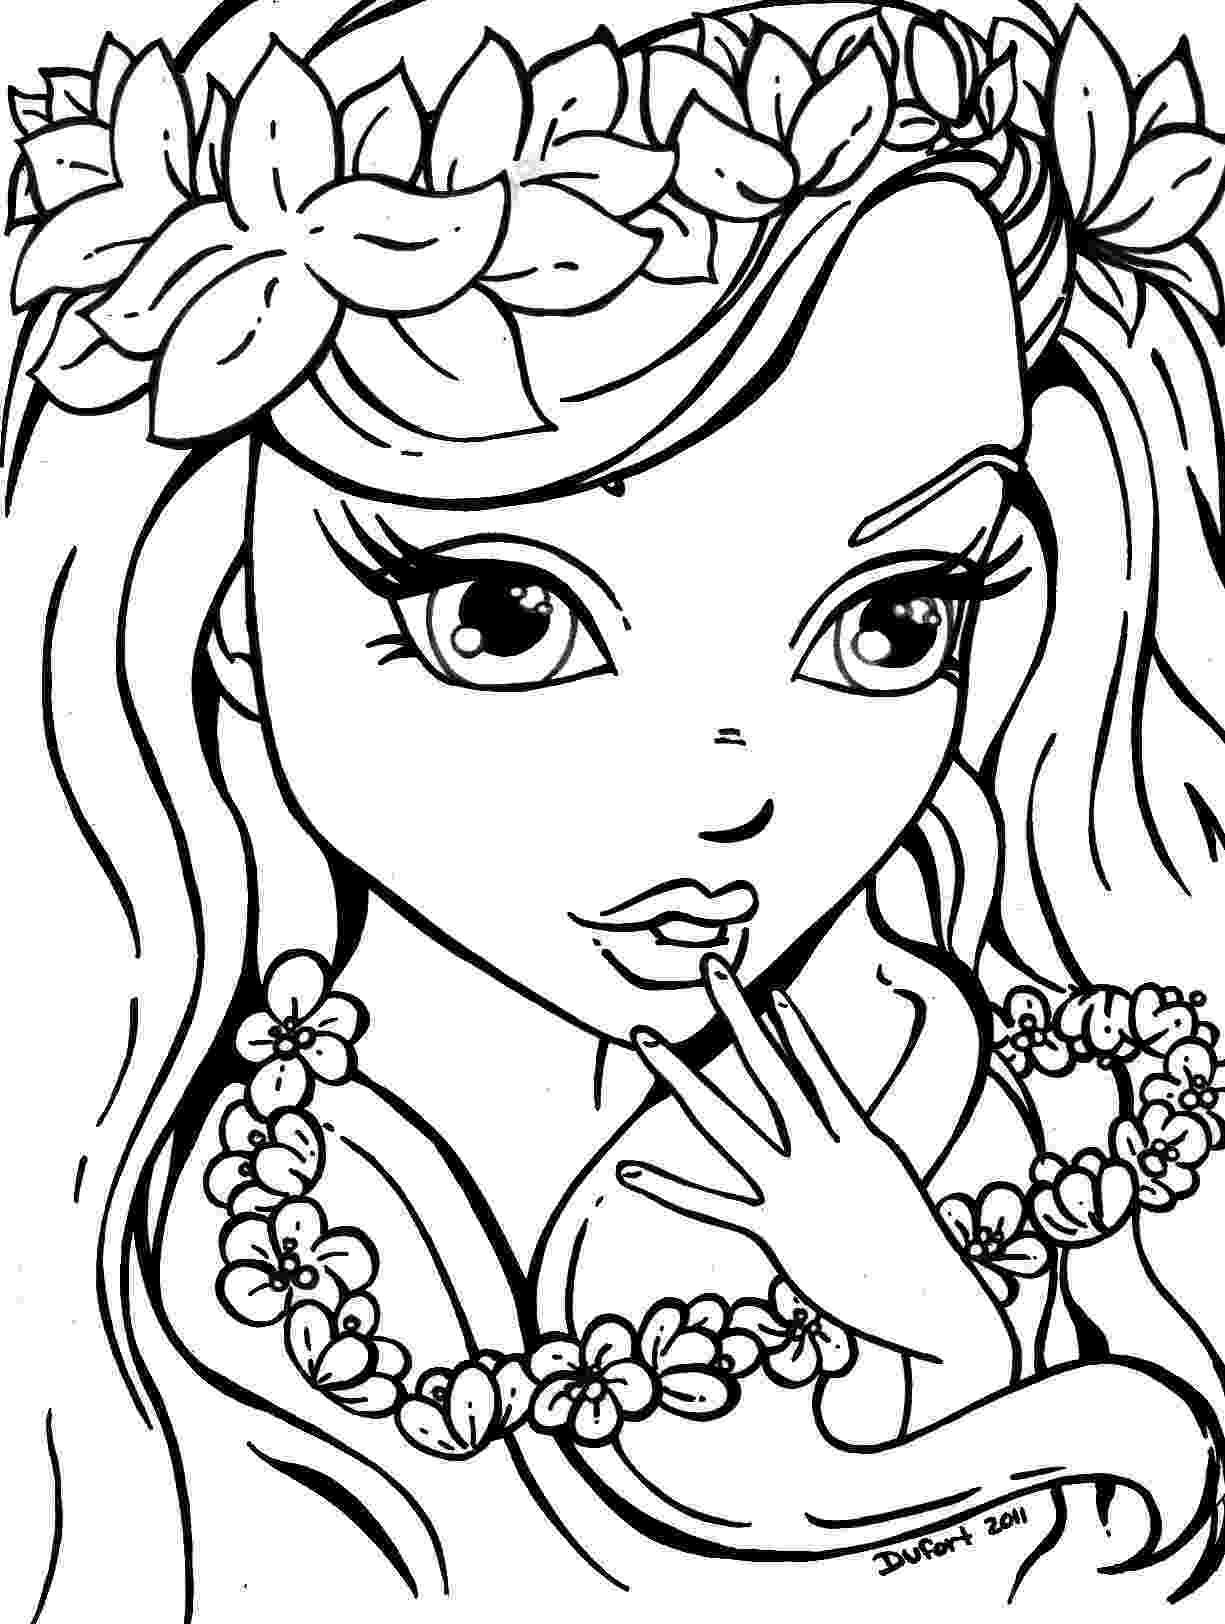 coloring pages for girls flowers flowersgirl girls only coloring pages pinterest for flowers pages girls coloring